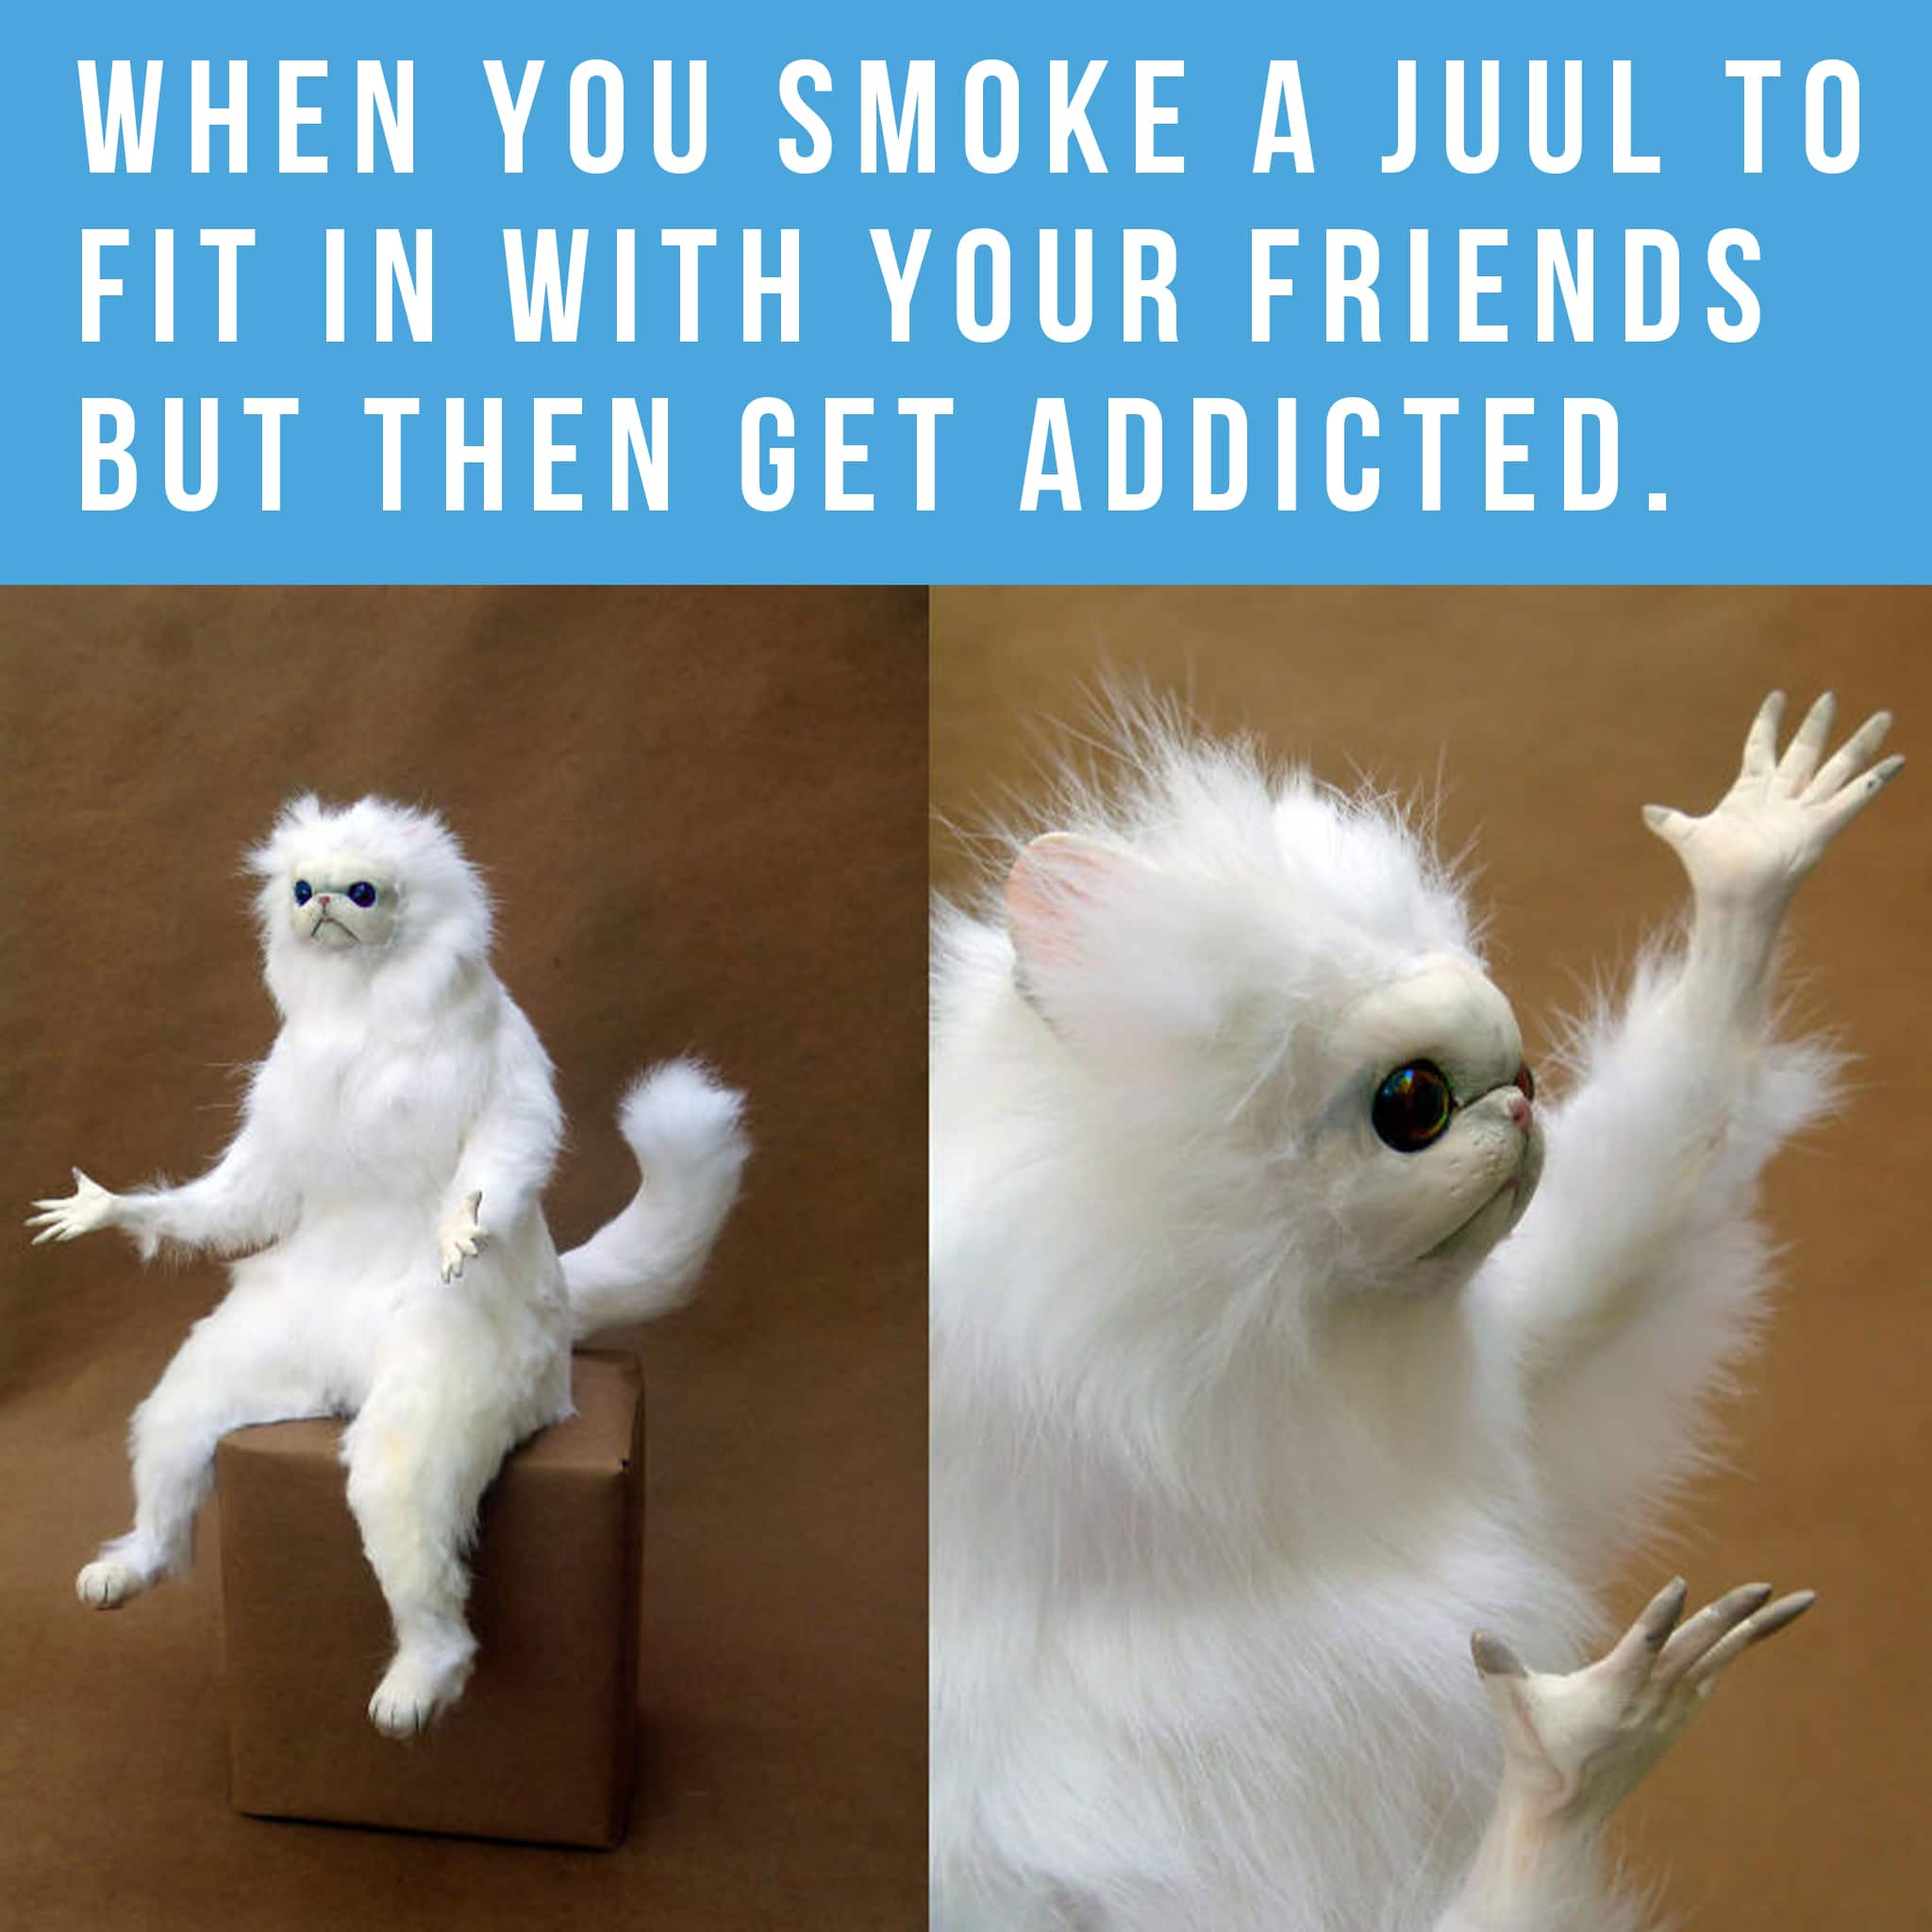 when you smoke Juul to fit in with your friends but then get addicted- anti-vape meme